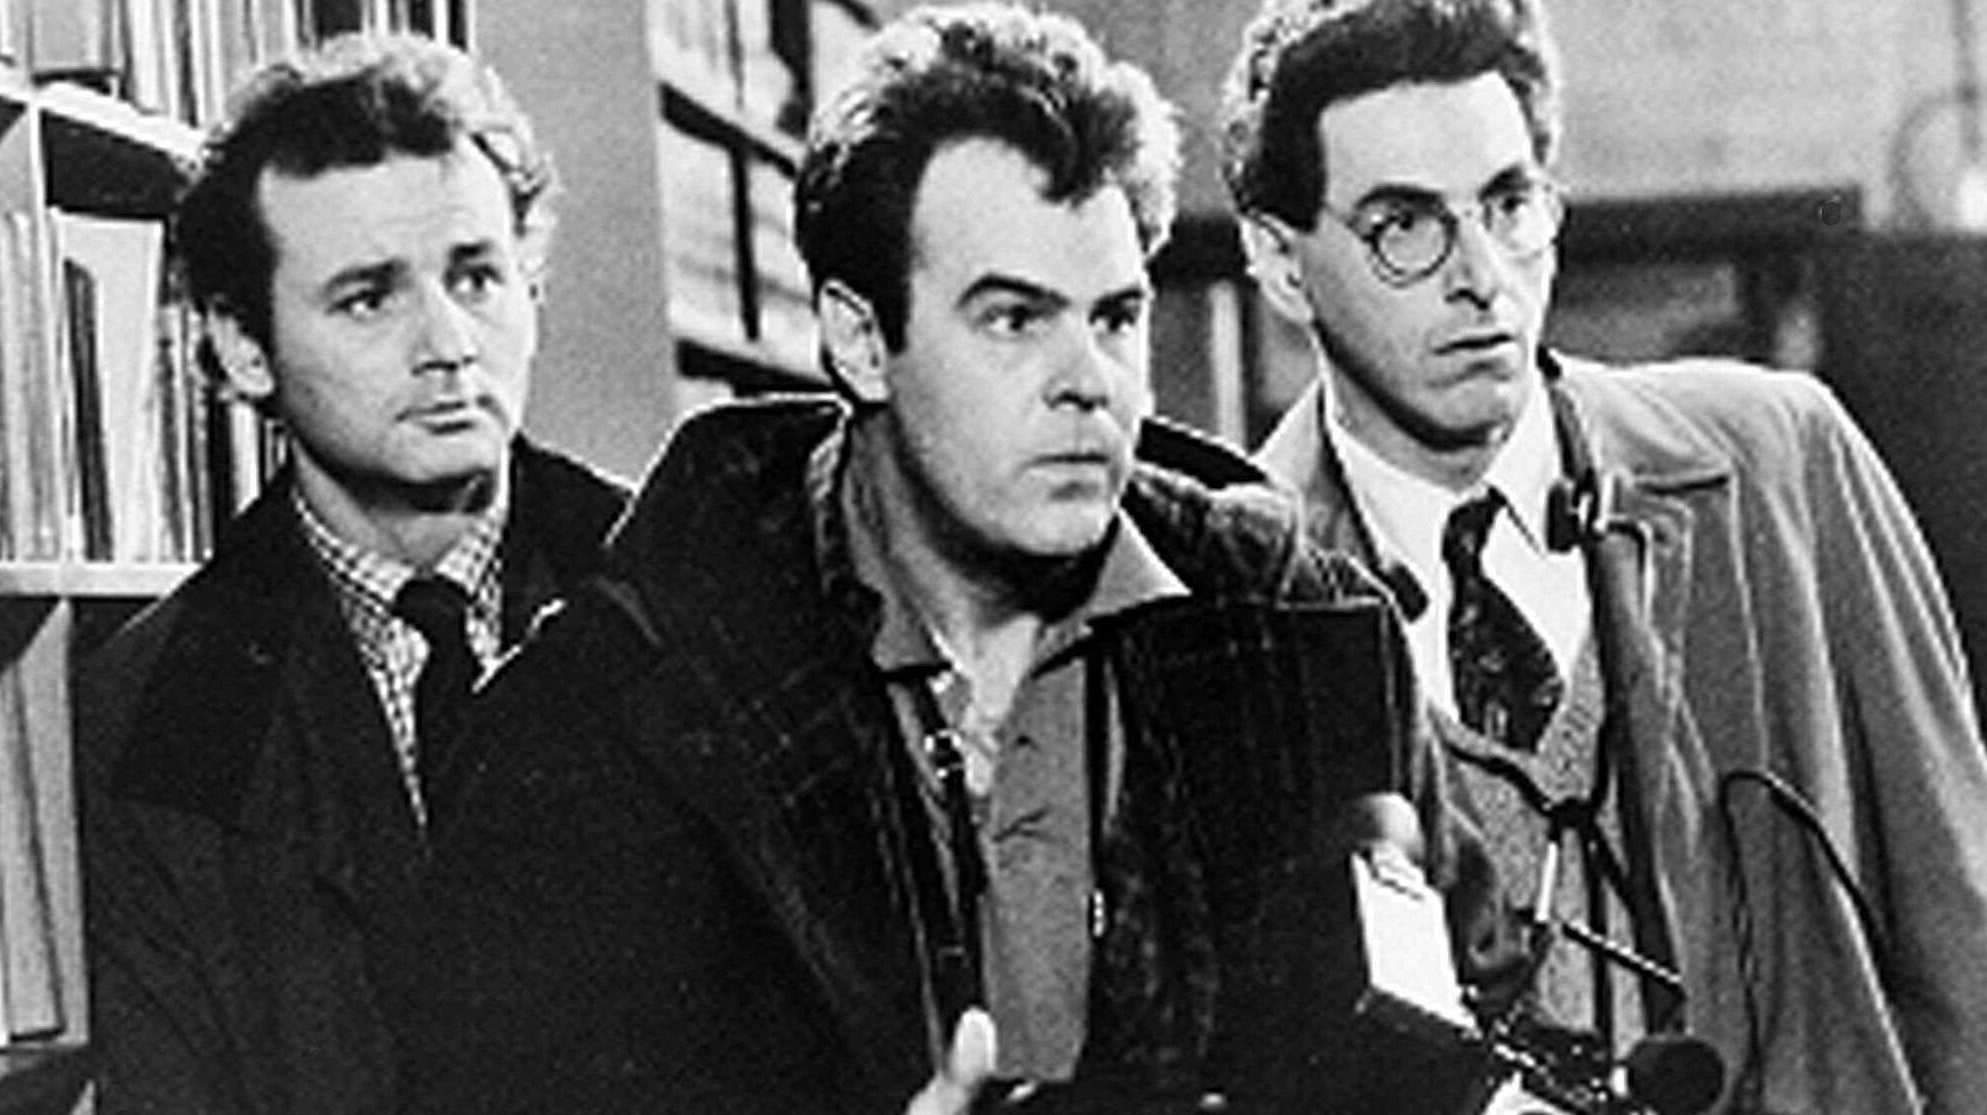 """Shown in this scene from the 1984 movie """"Ghostbusters"""" are Bill Murray, Dan Aykroyd, center, and Harold Ramis.  (AP Photo)"""